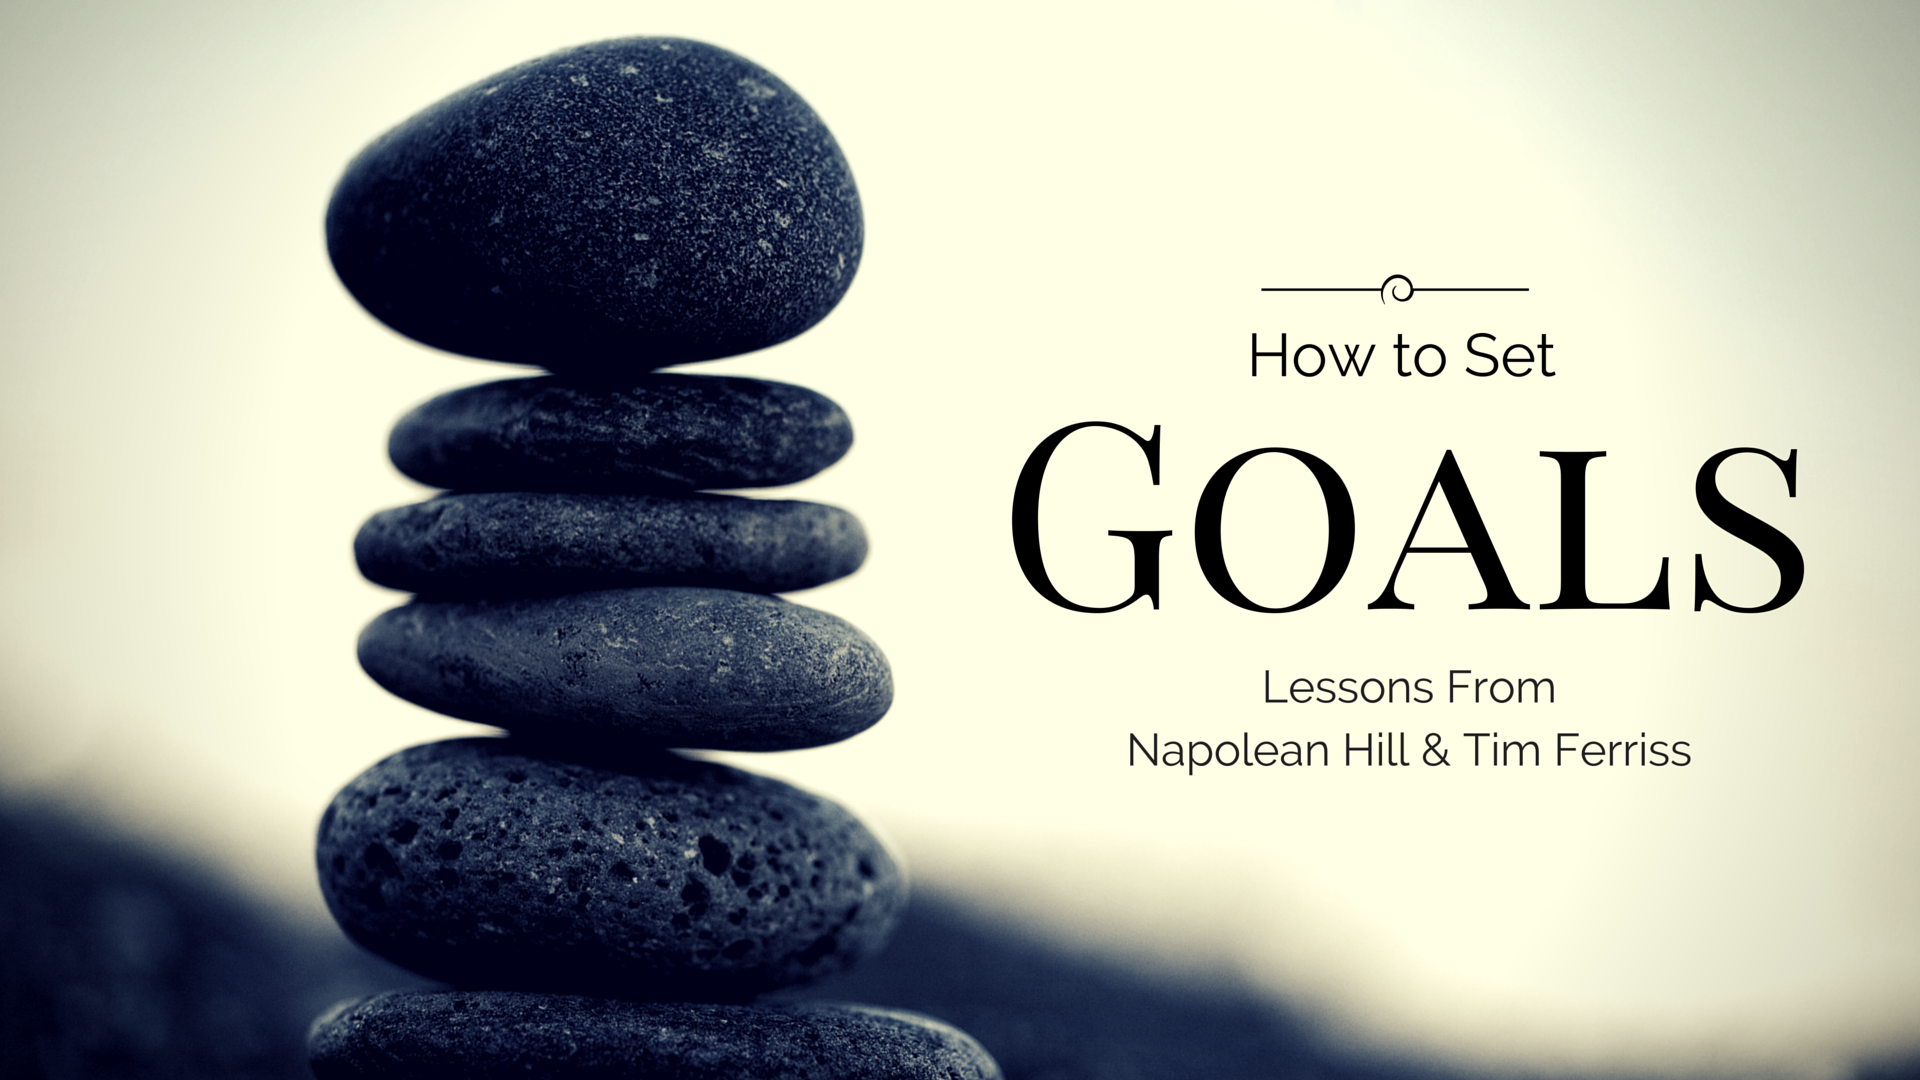 How to Set Goals - Lessons from Napolean Hill & Tim Ferriss